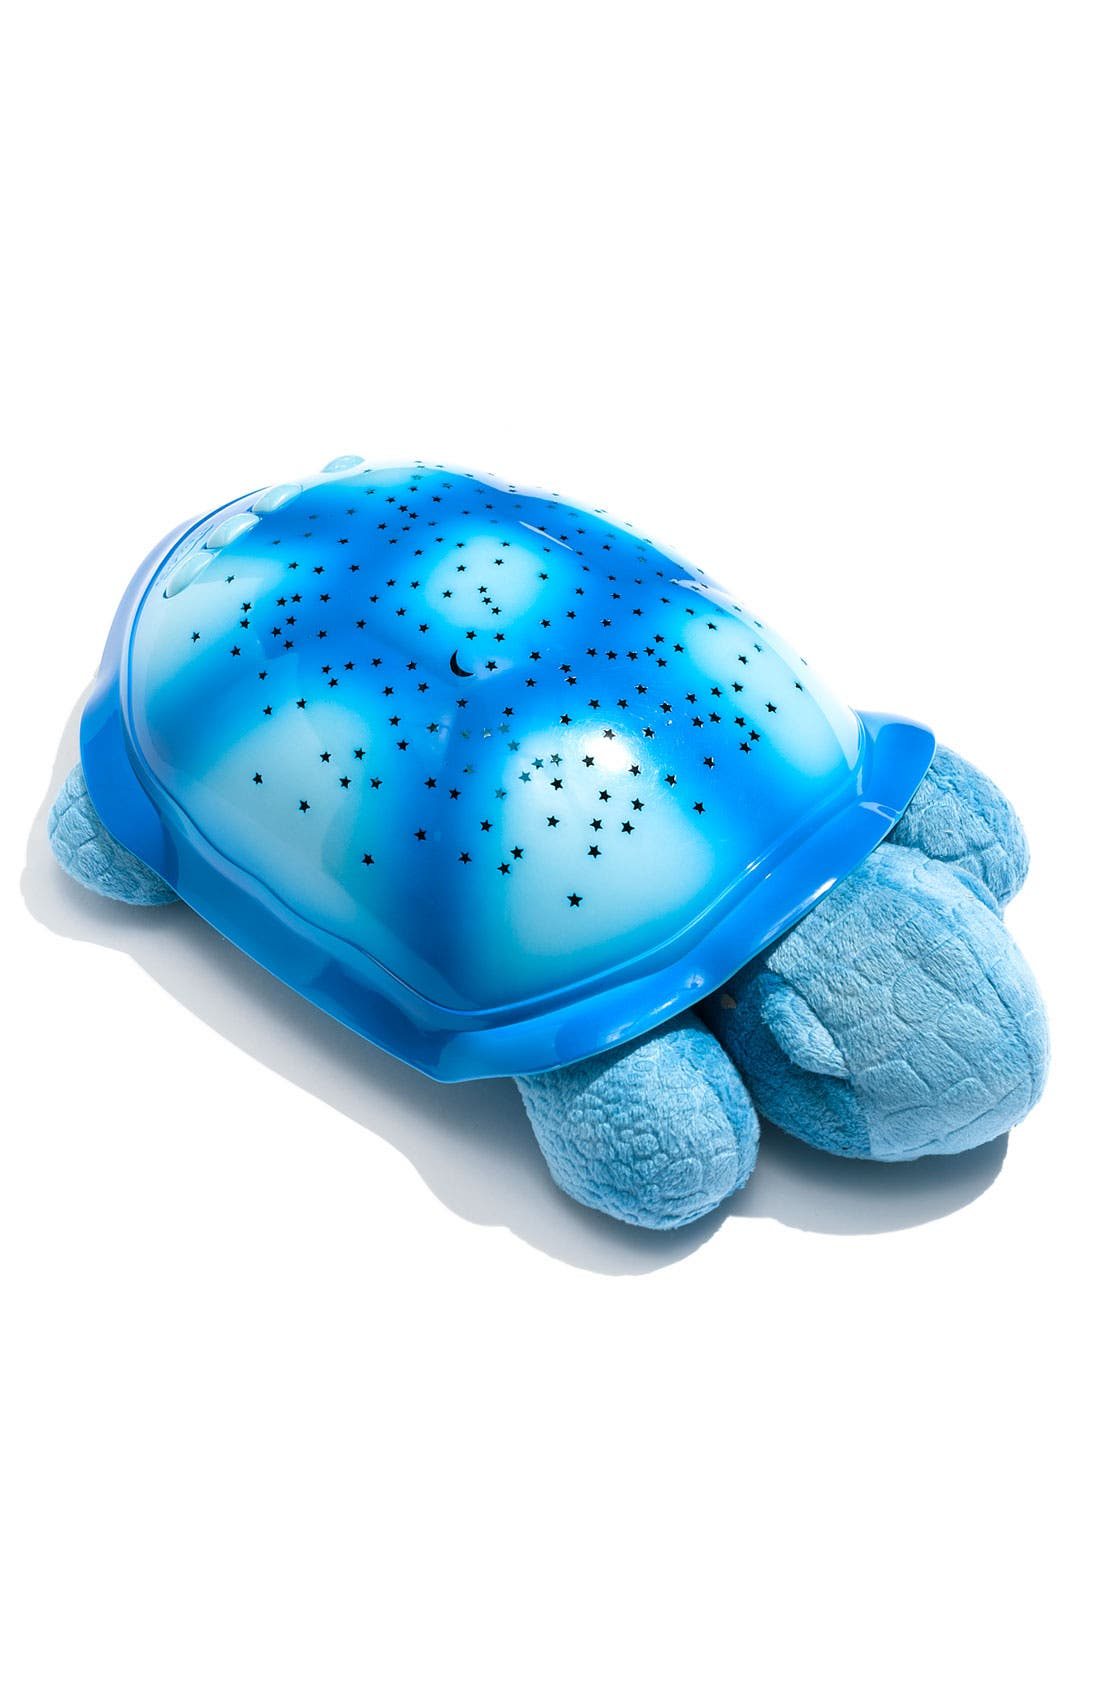 Alternate Image 1 Selected - Cloud B 'Twilight' Stuffed Turtle Night Light